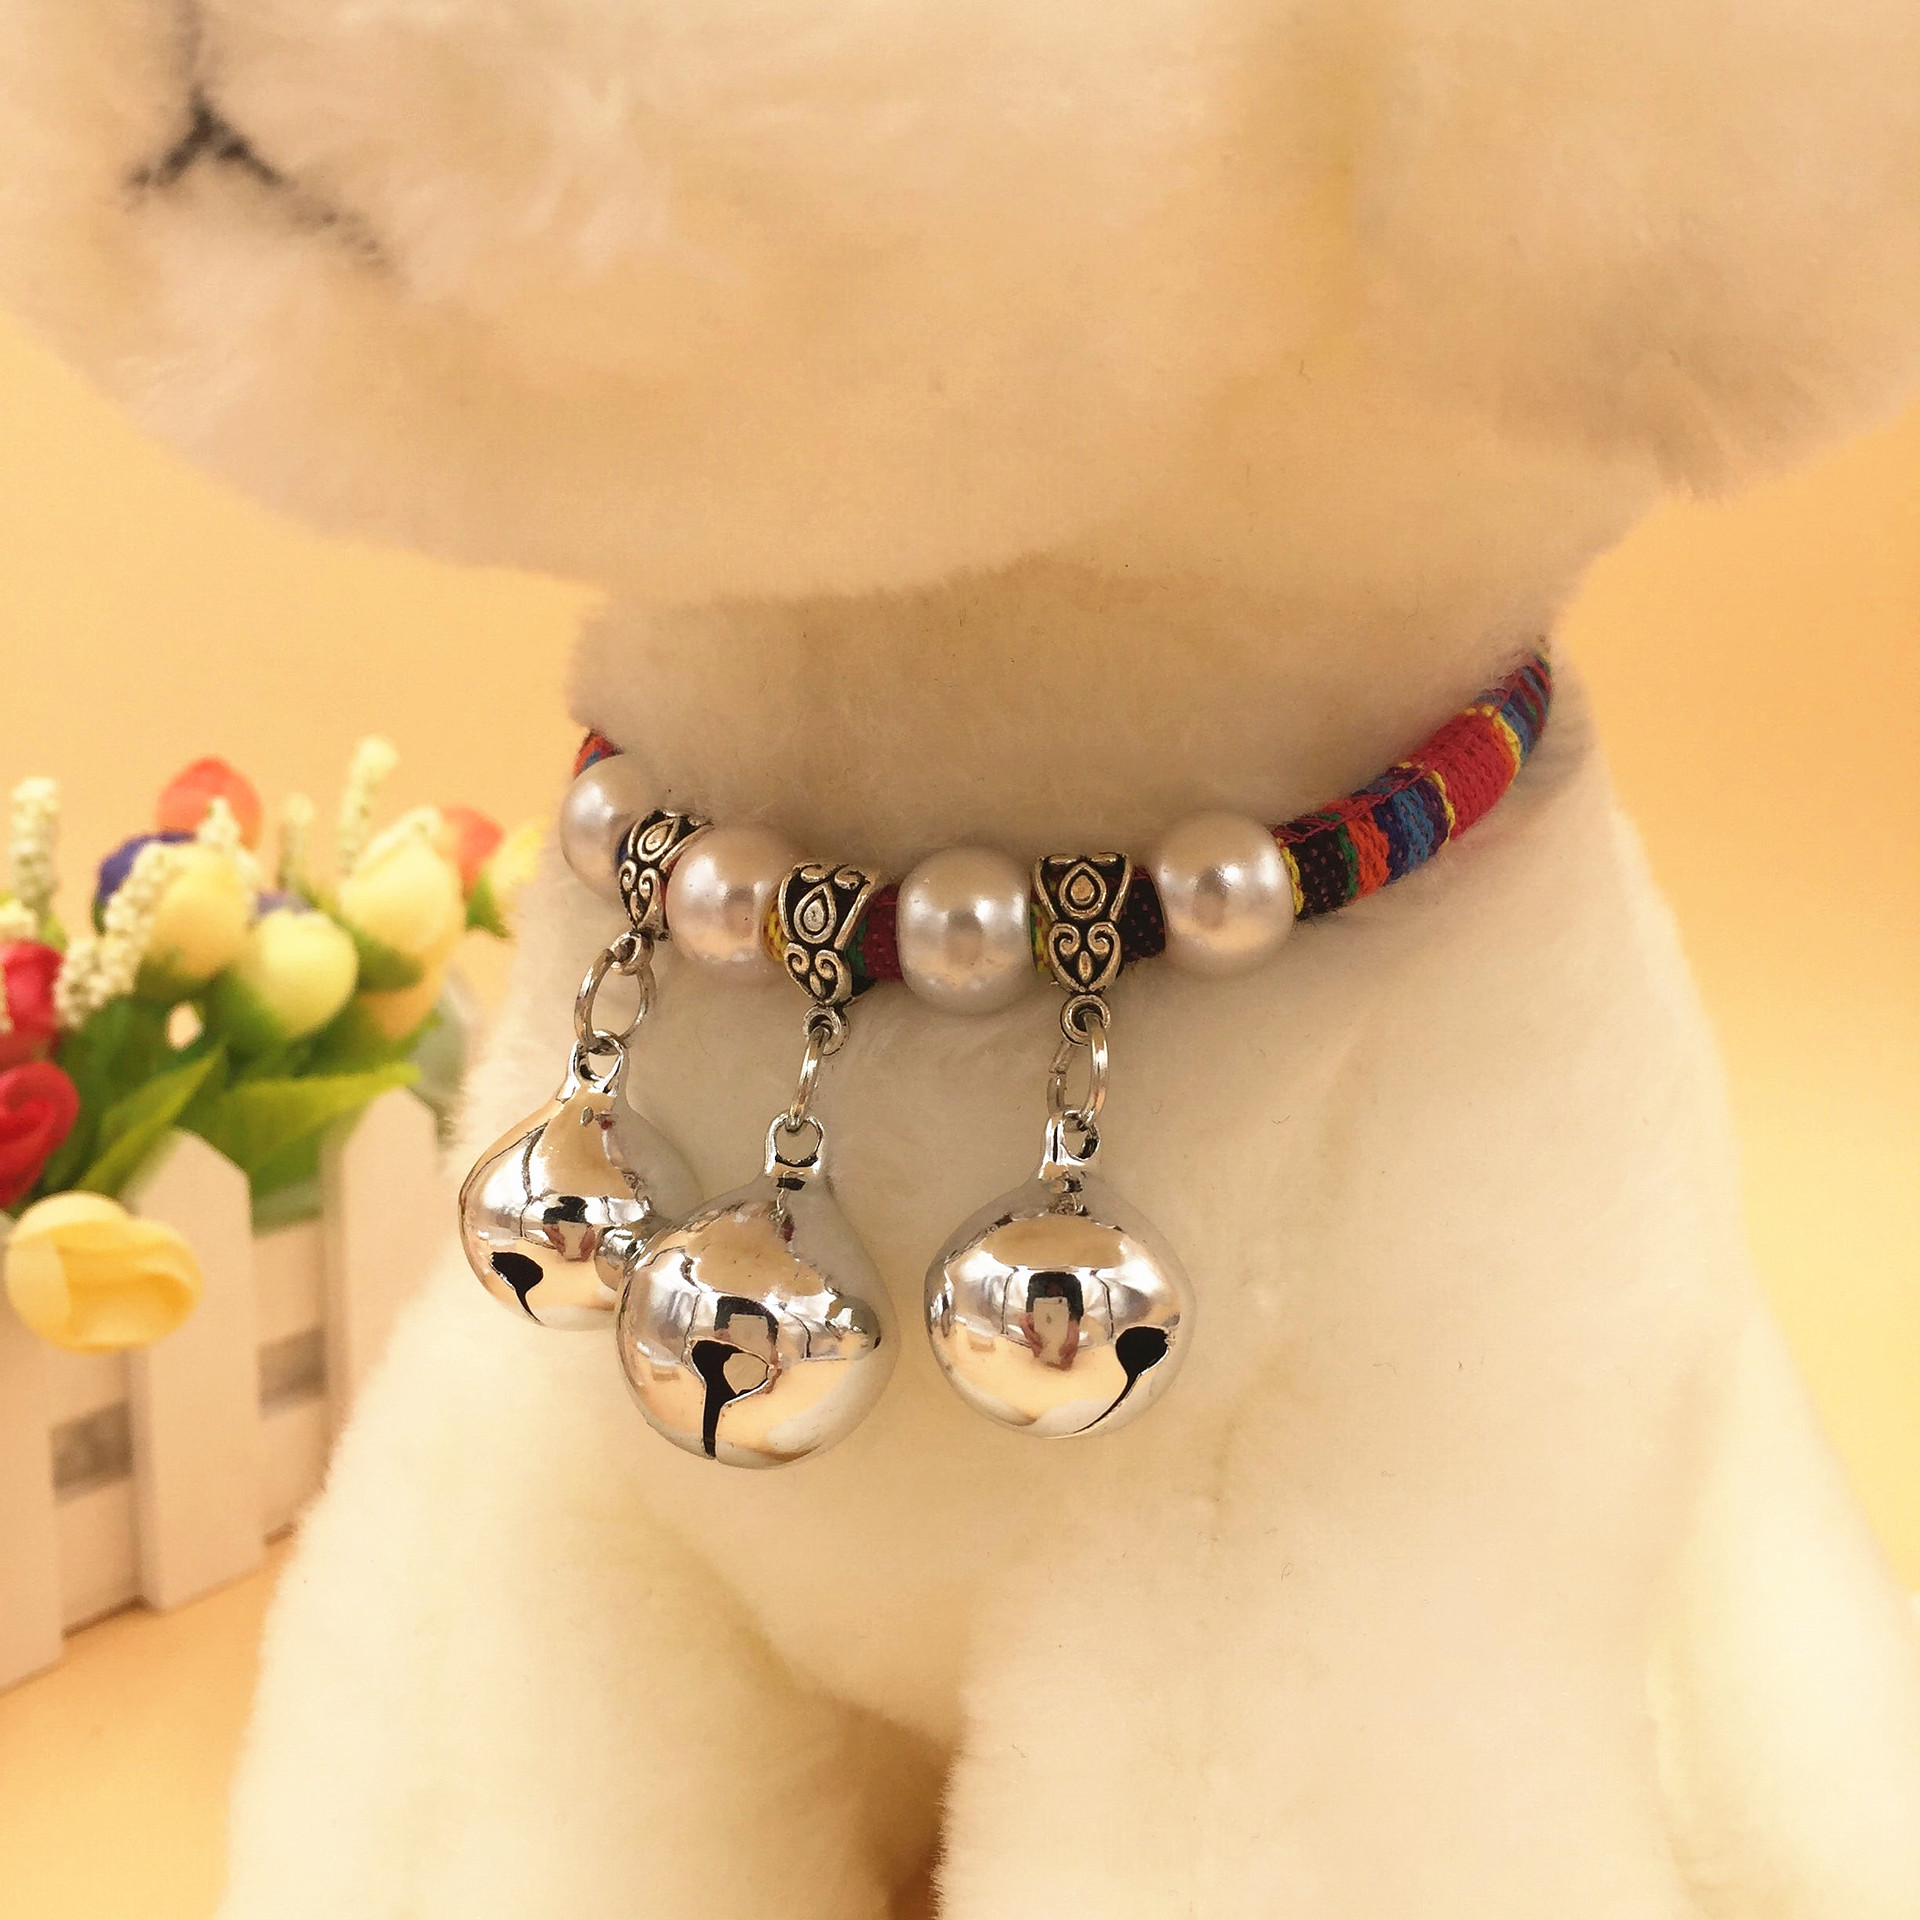 Dog Neck Ring Bell Pet Bell Neck Ring Silver Bells Neck Ring Teddy Bichon Neck Ring Bell Necklace Small And Medium-sized Dogs